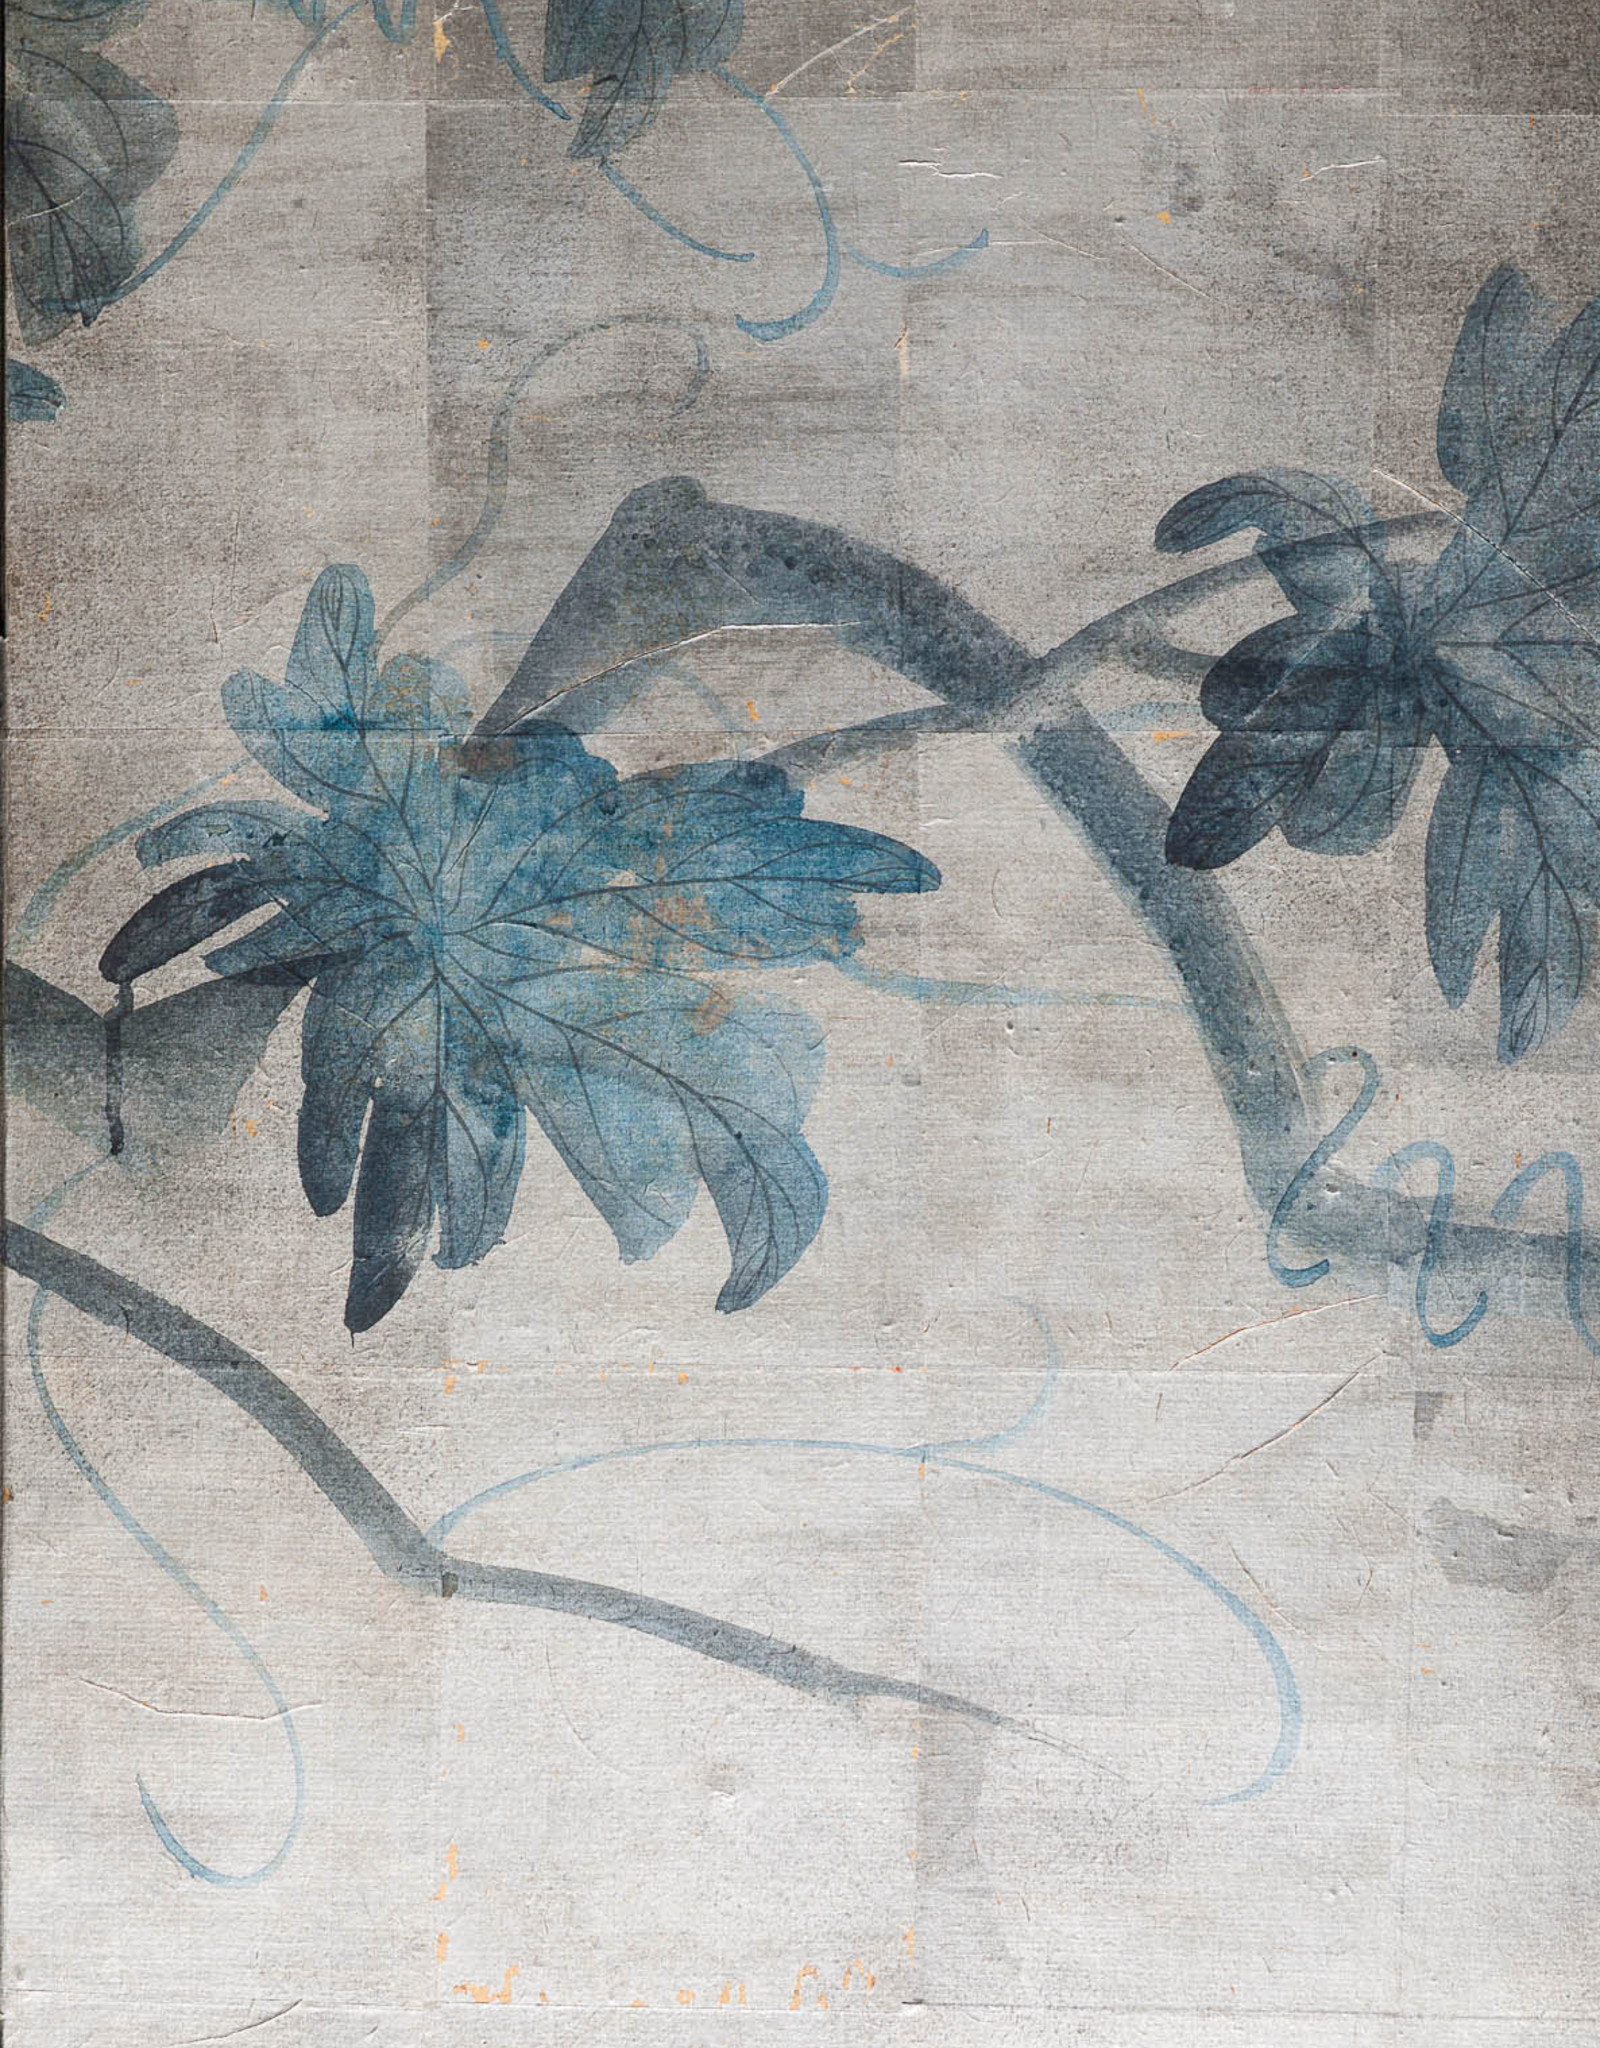 """Lawrence & Scott Sung Tze-Chin """"Tranquility"""" 4-Panel Ink on Paper Grapevine Chinoiserie Hanging Screen Painting"""